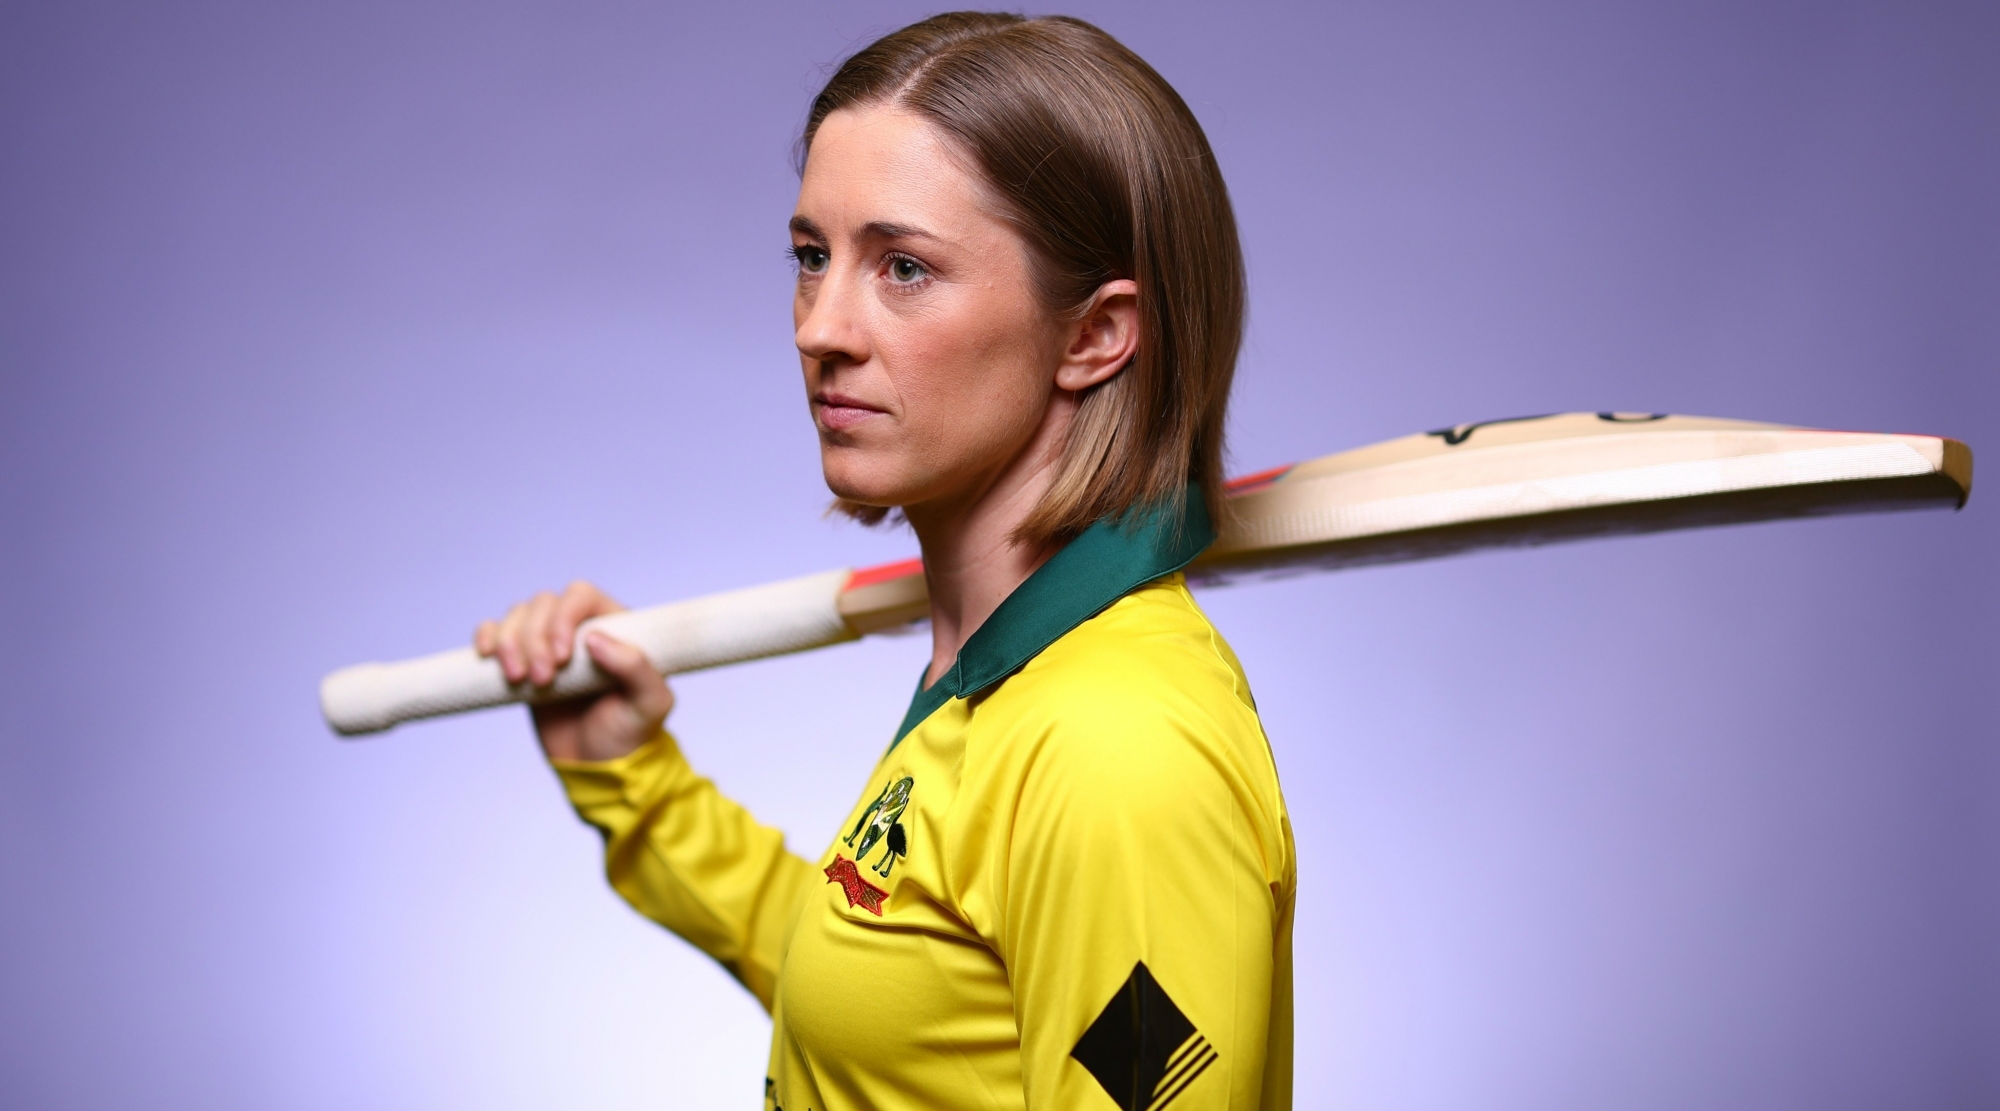 ICC Women's T20 World Cup 2020: Rachael Haynes 50 Helps Australia Survive Scare Against Sri Lanka